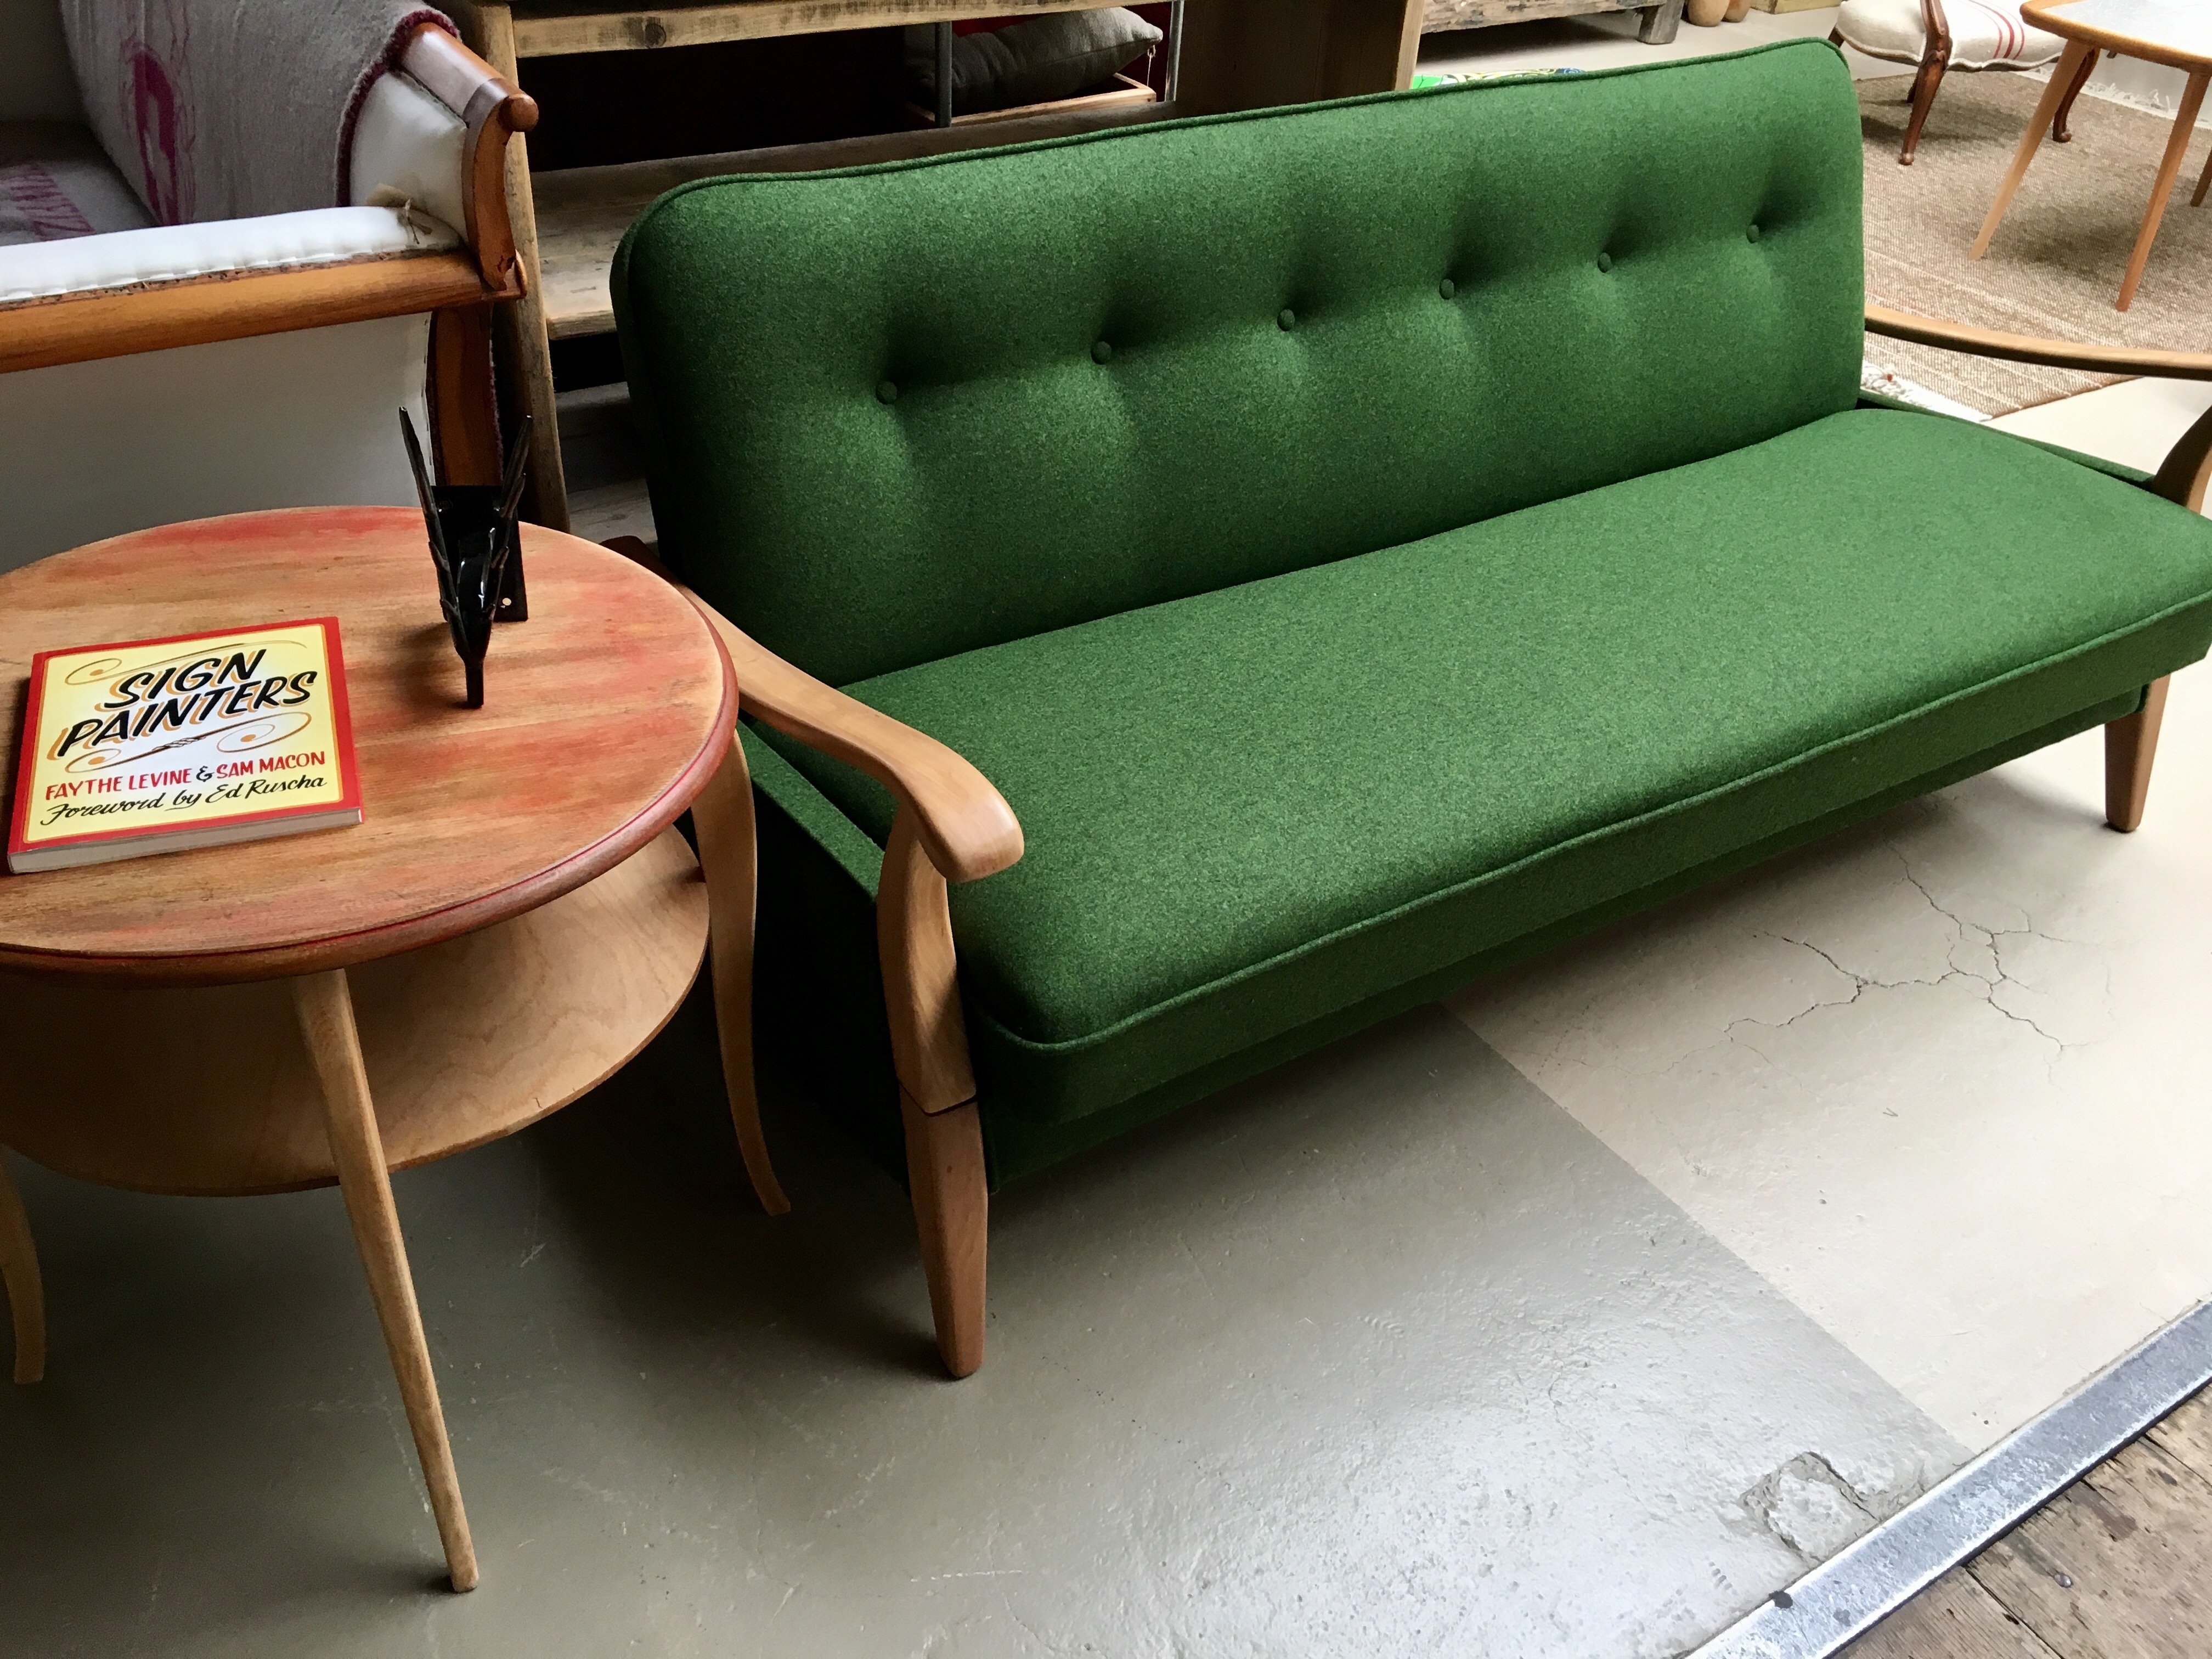 Restoed vintage bed sofa